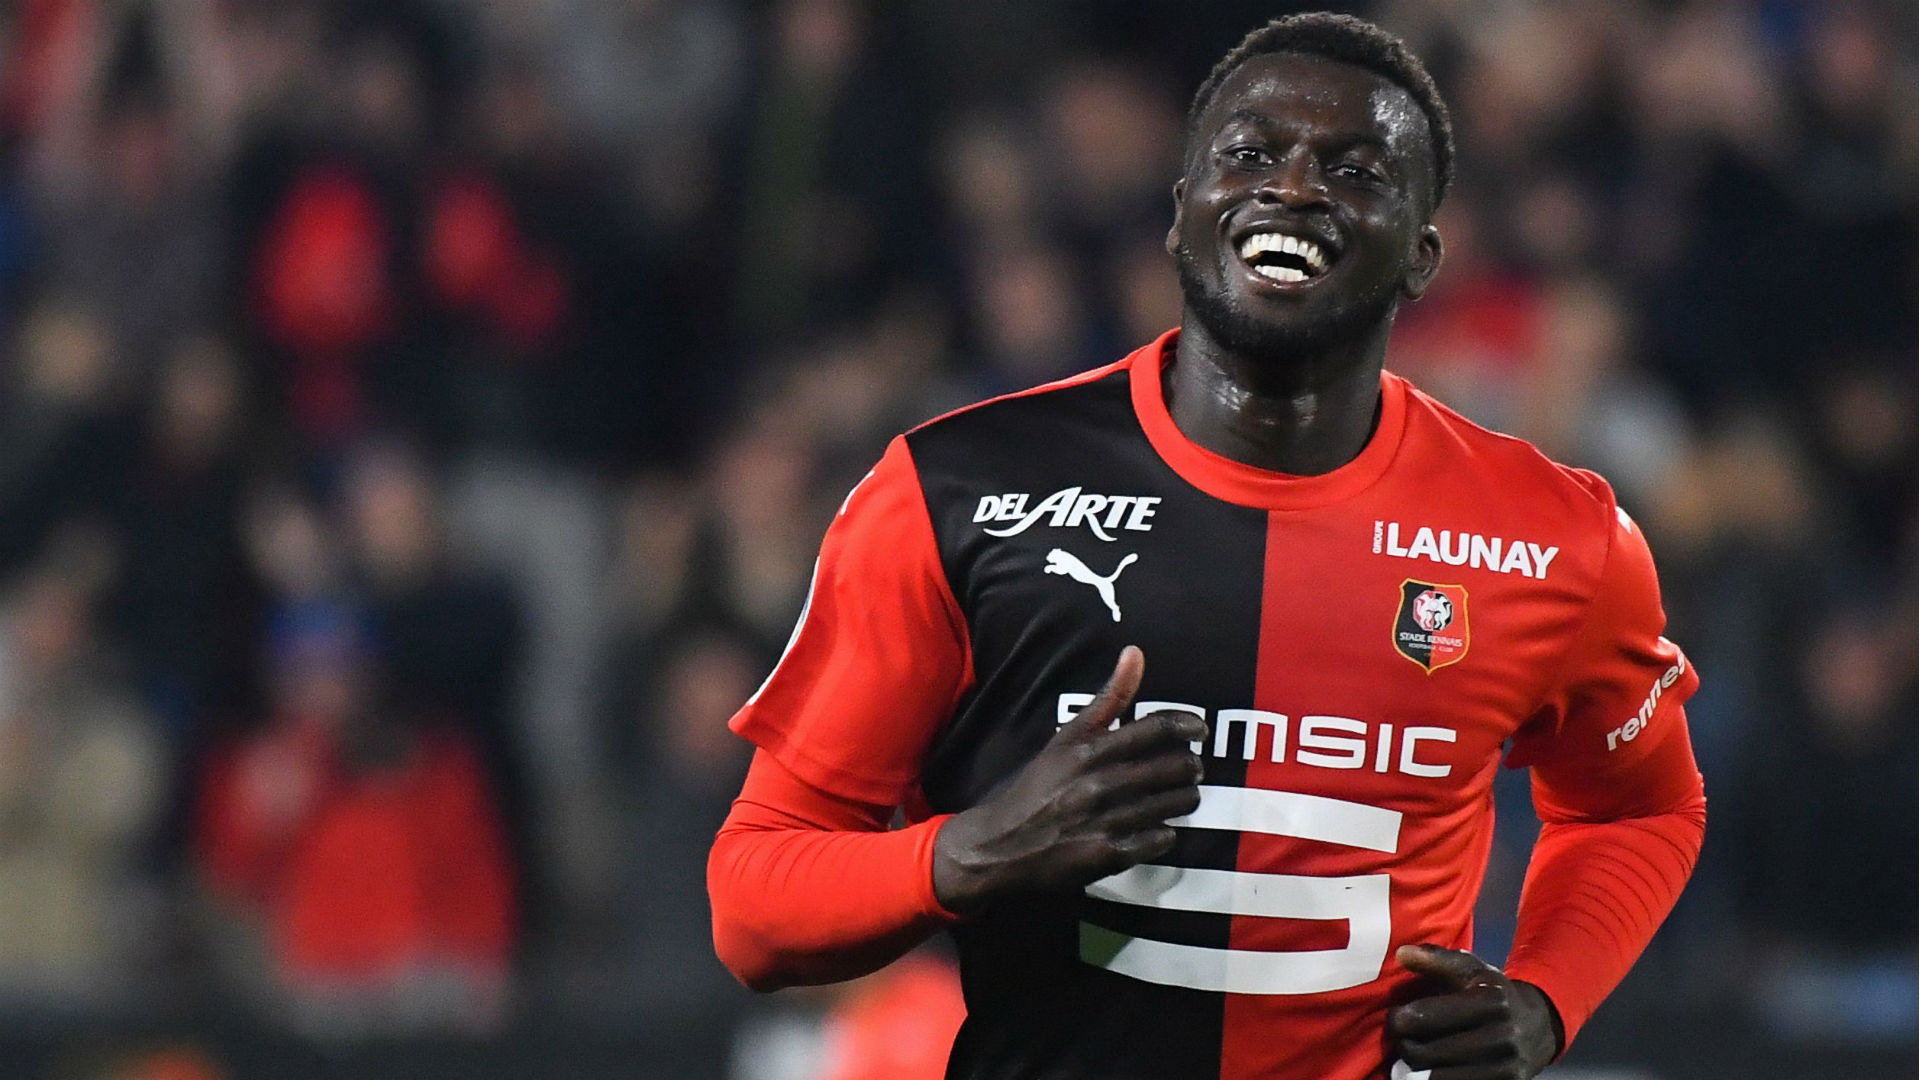 M'baye Niang scores in Rennes friendly win over Saint-Etienne